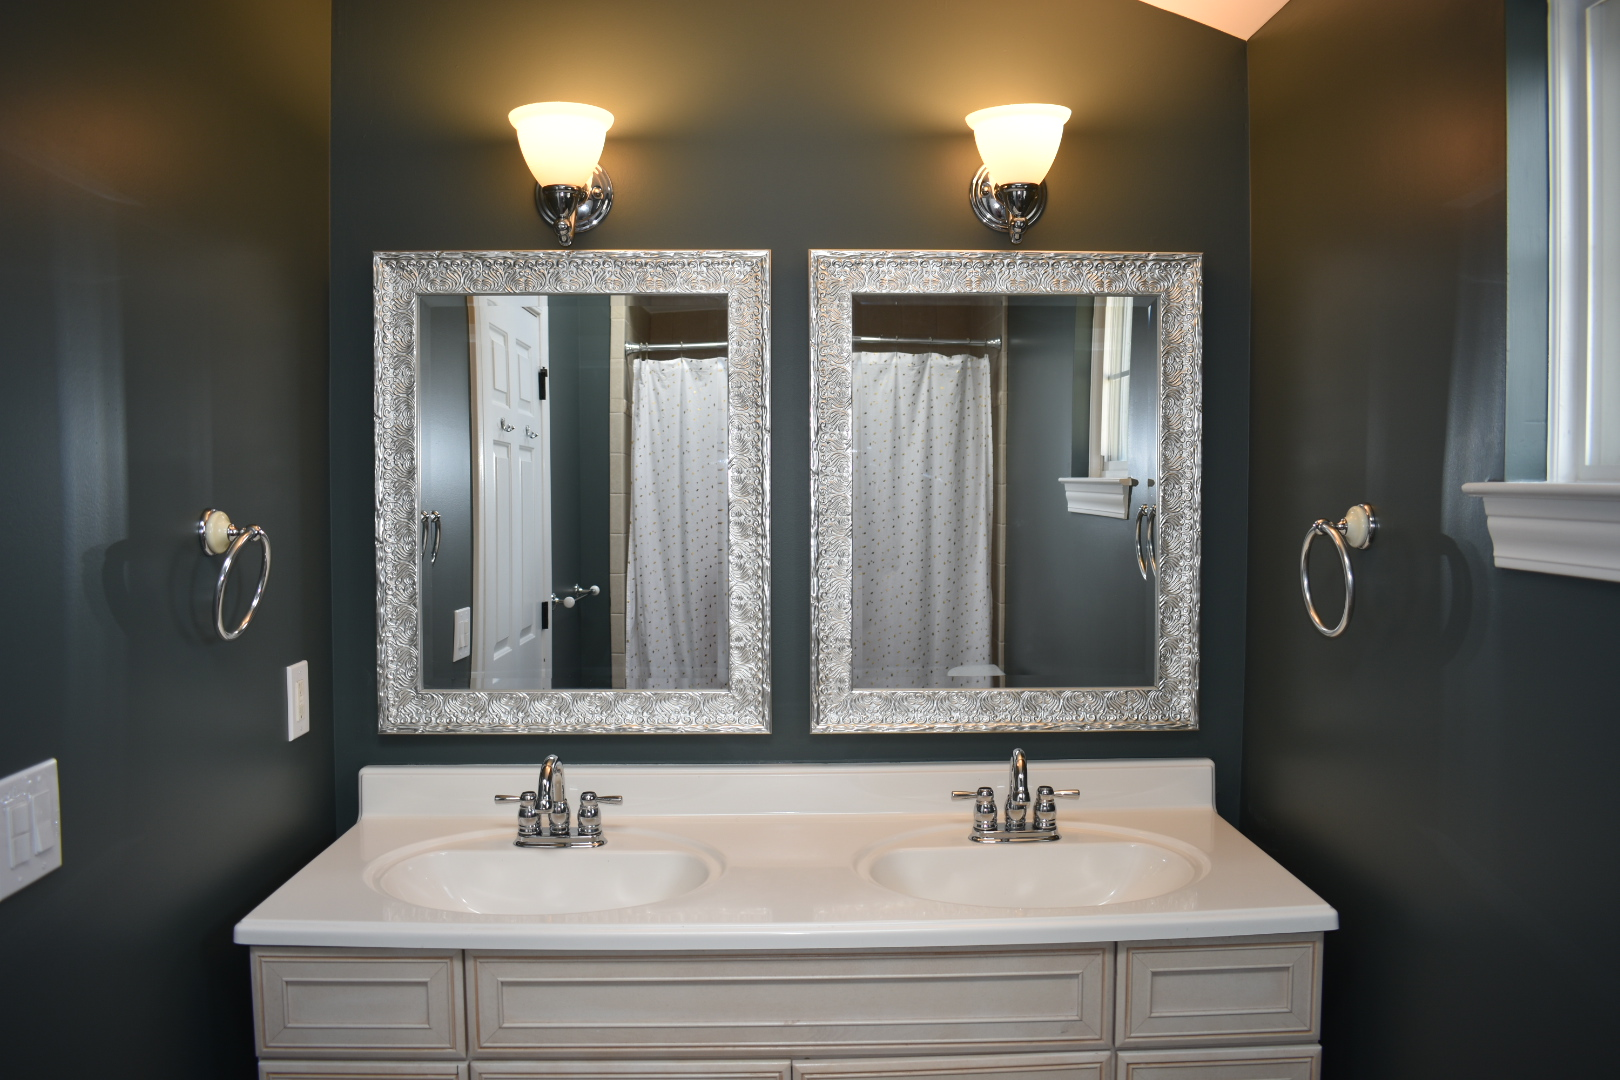 Absolutely loving the feel of our bathroom with a fresh coat of paint & the new mirrors.